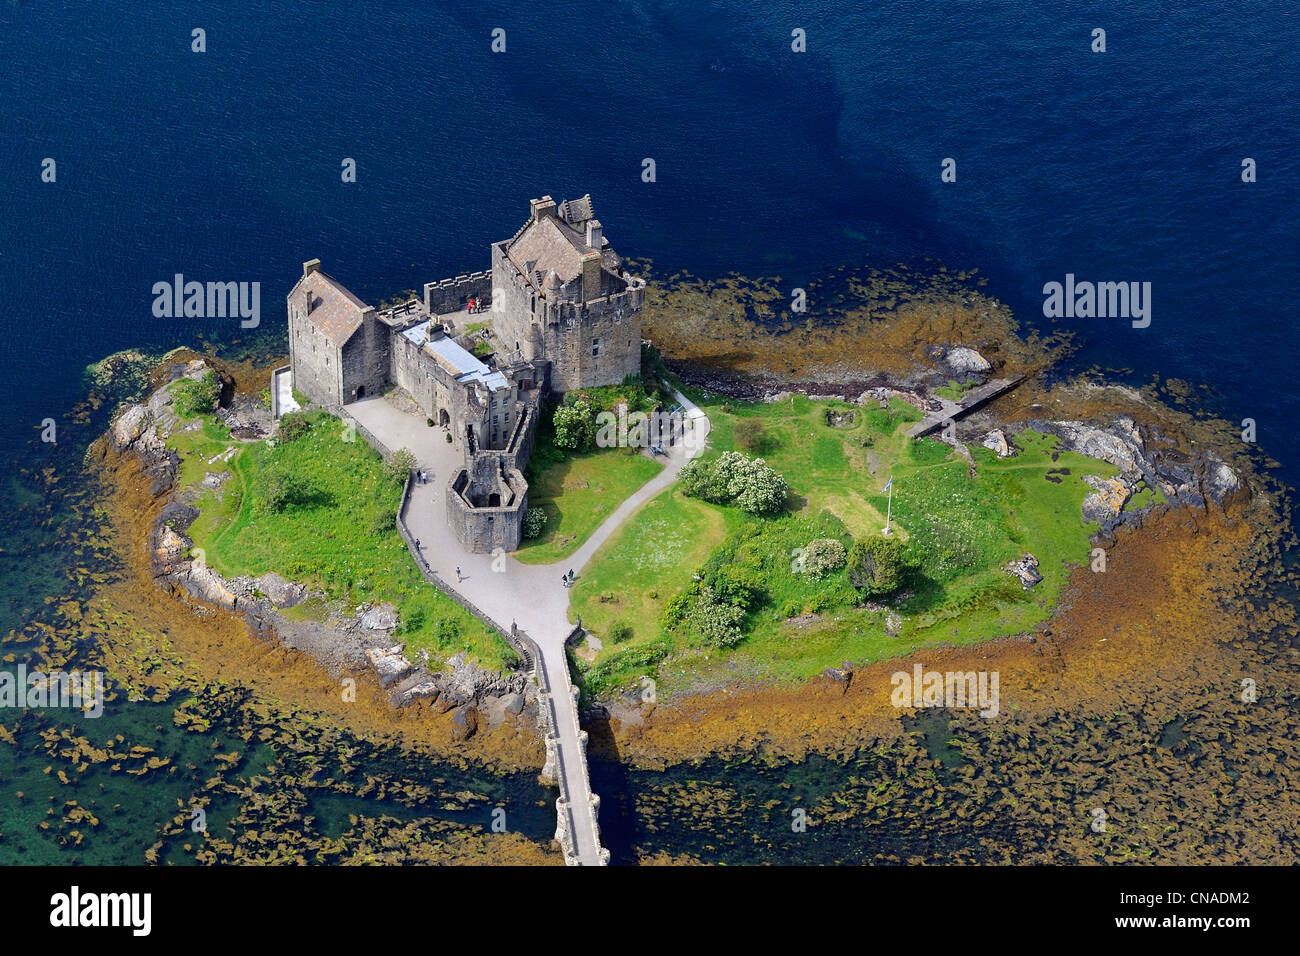 United Kingdom, Scotland, Highland, Dornie, Eilean Donan castle on the Loch Duich (aerial view) - Stock Image